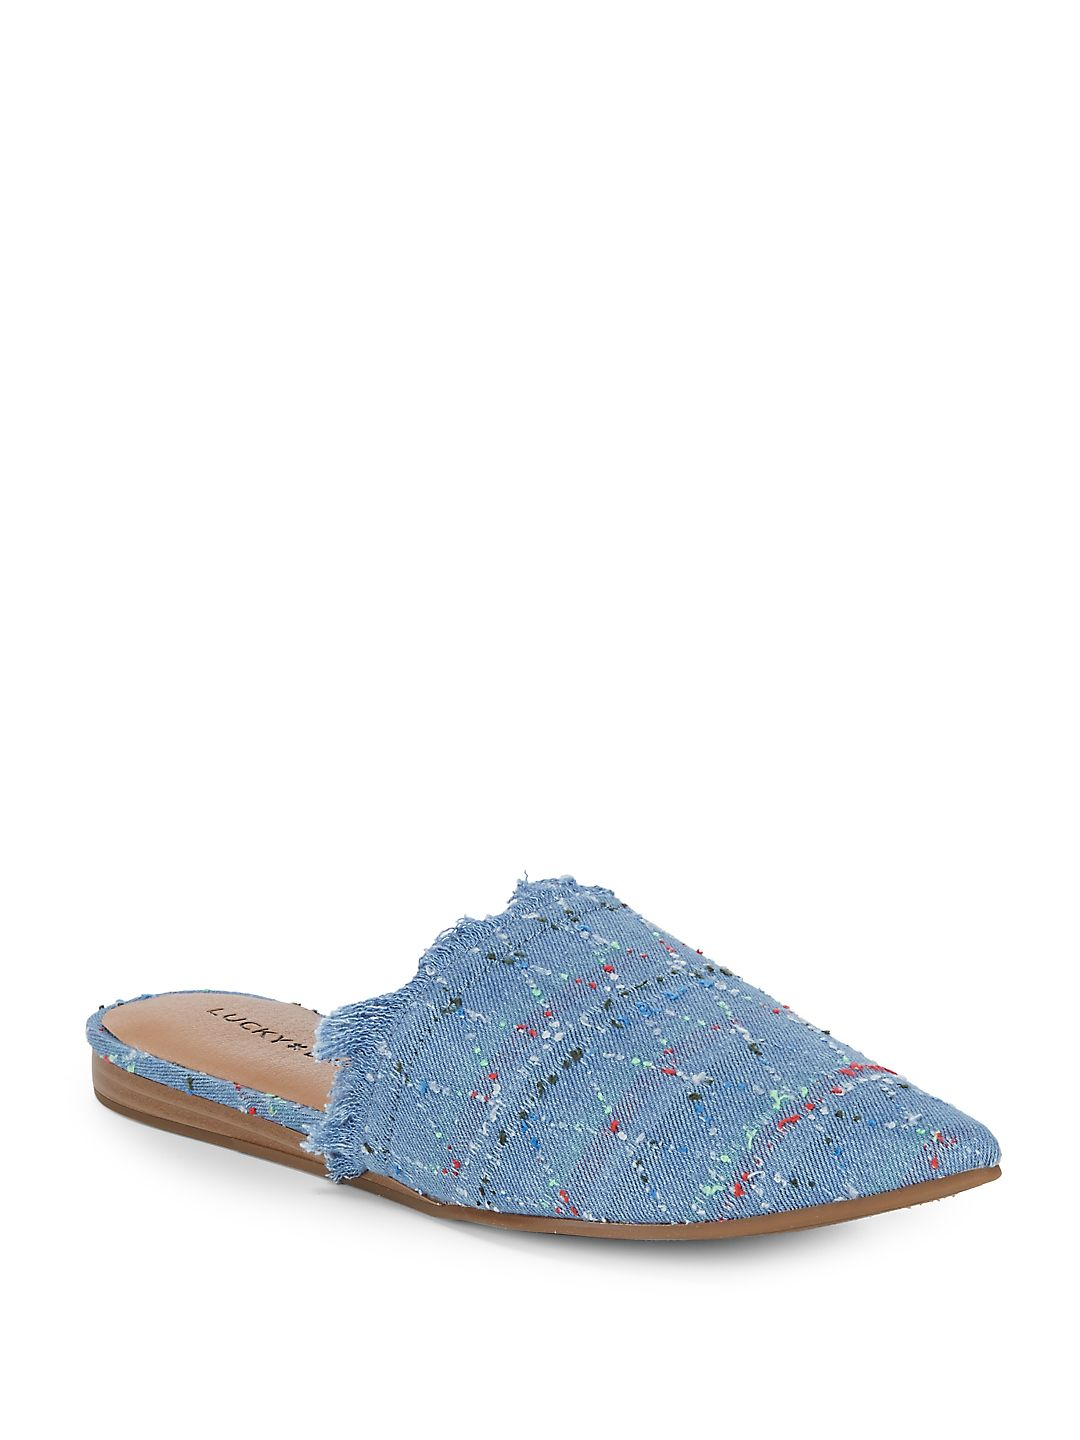 Bapsee Casual Frayed Mules